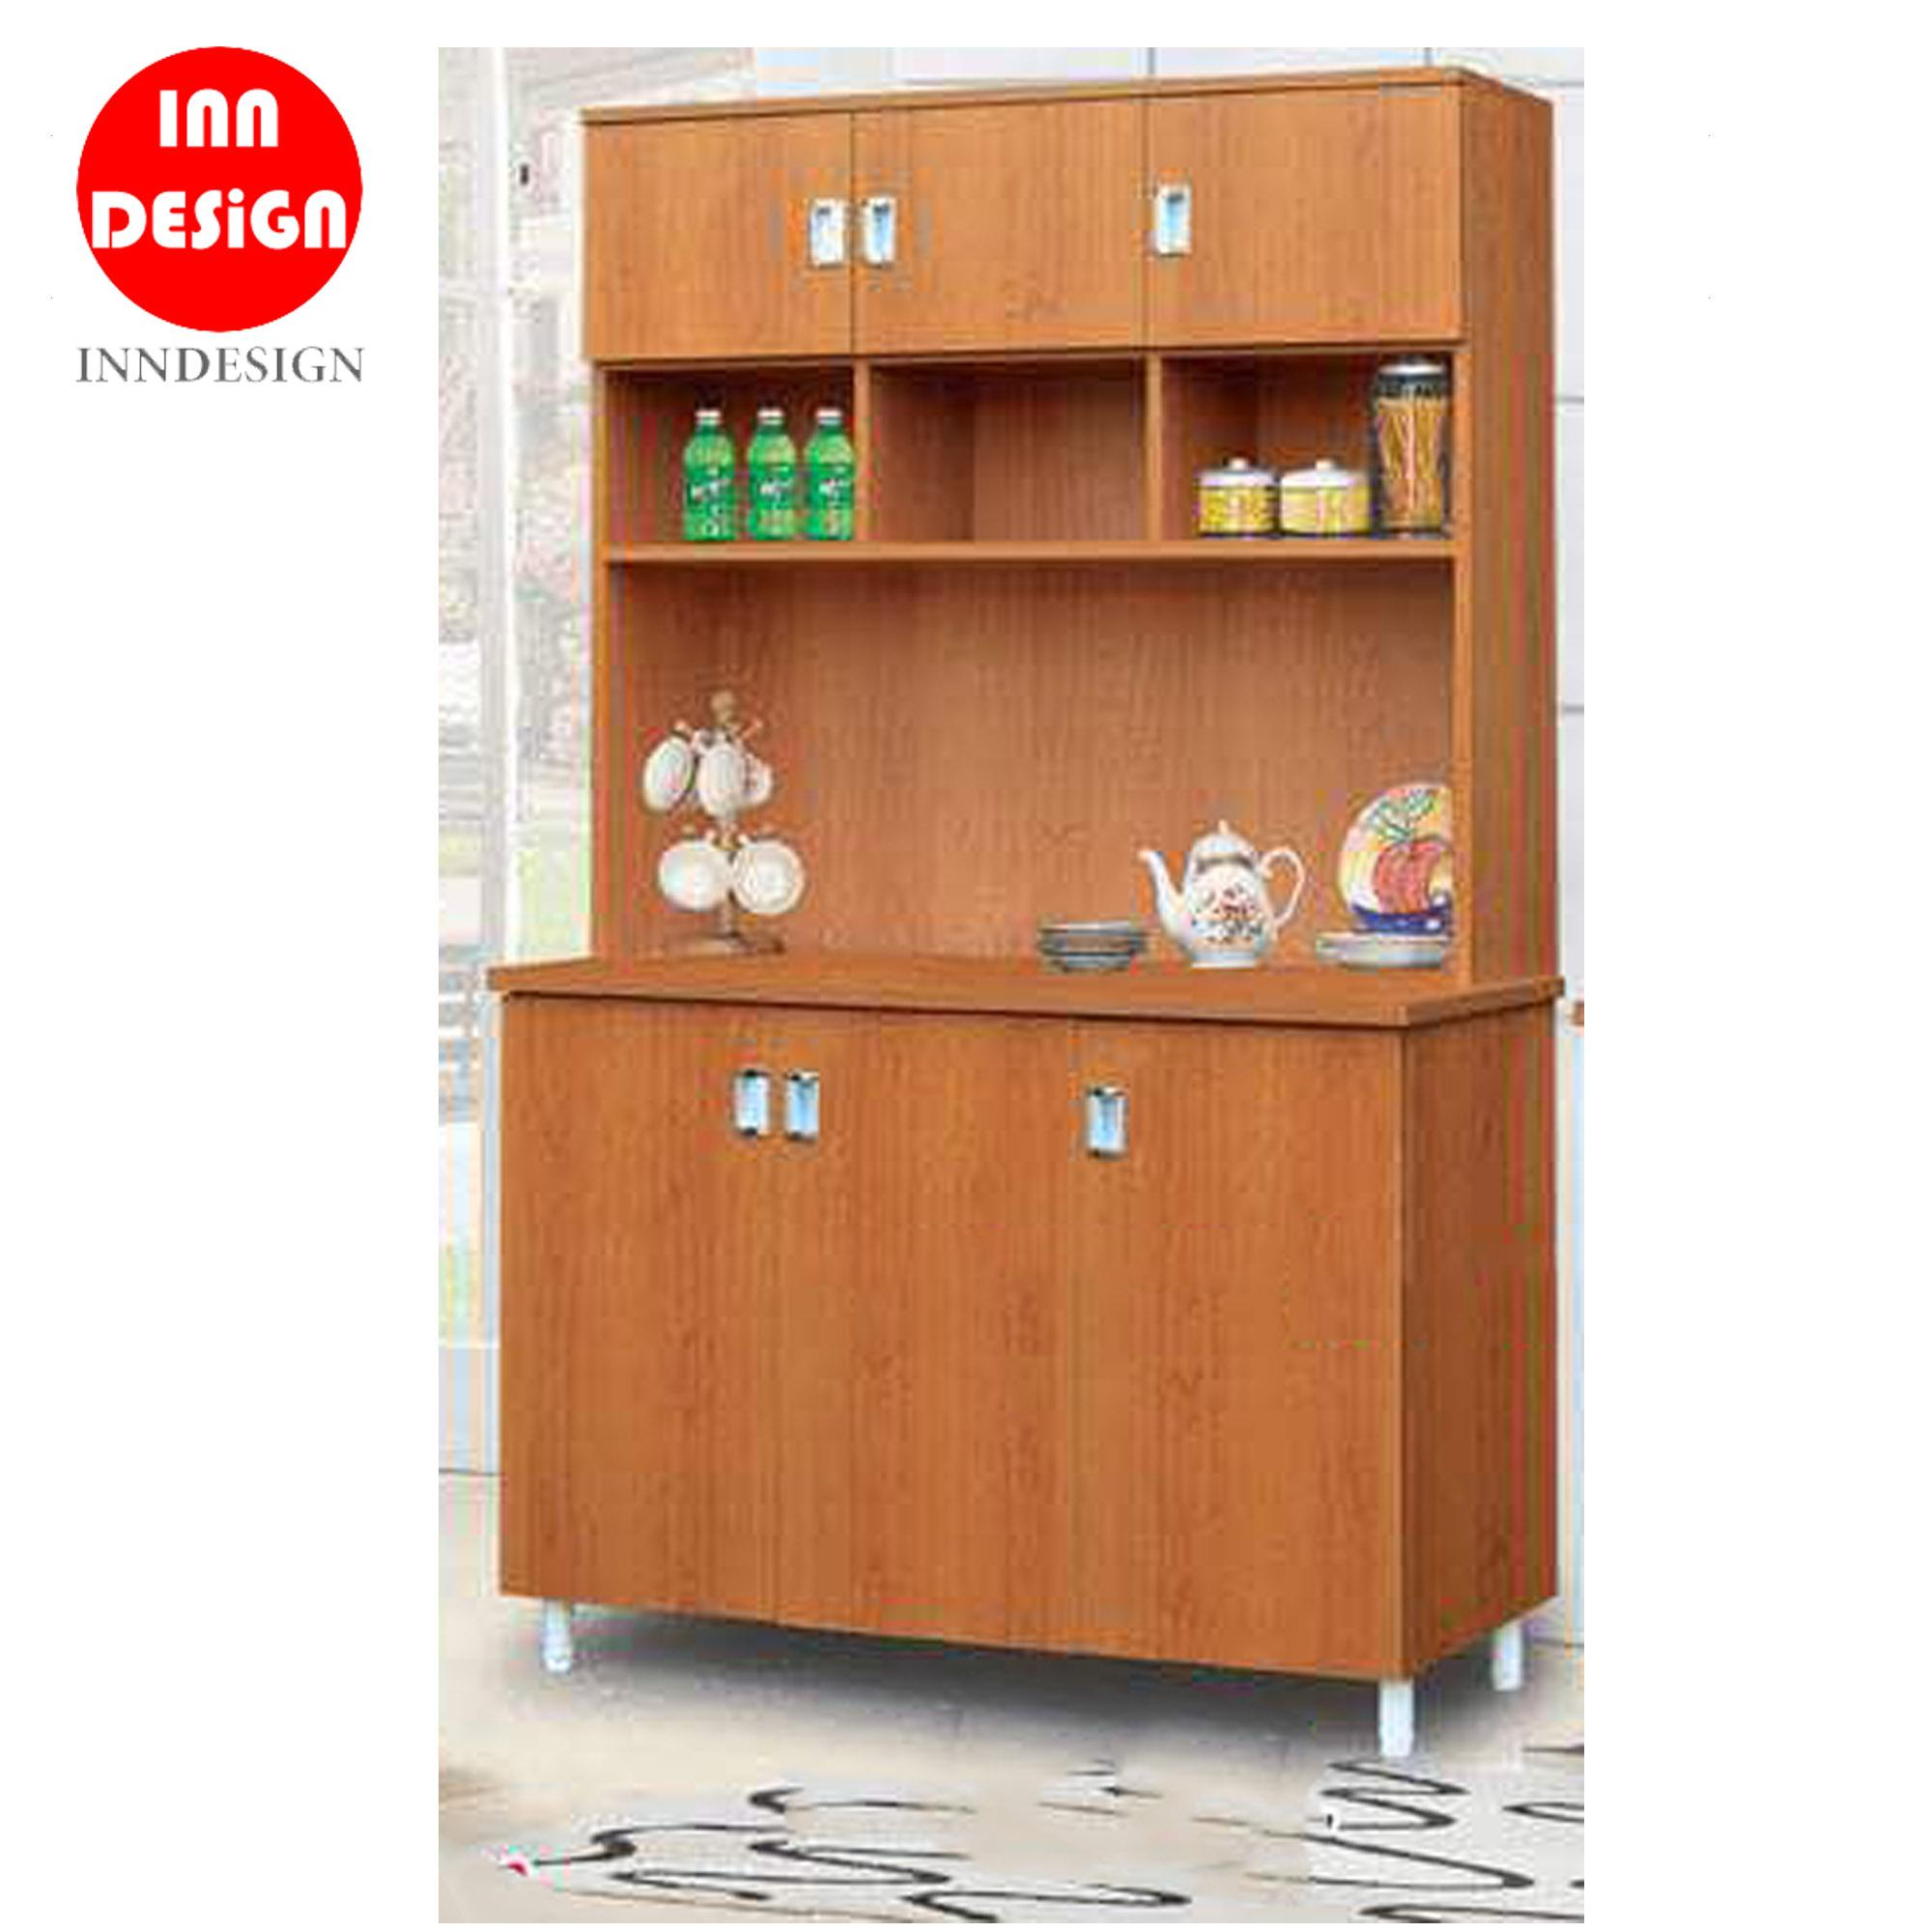 Evi Kitchen Cabinet (Free Delivery and Installation)